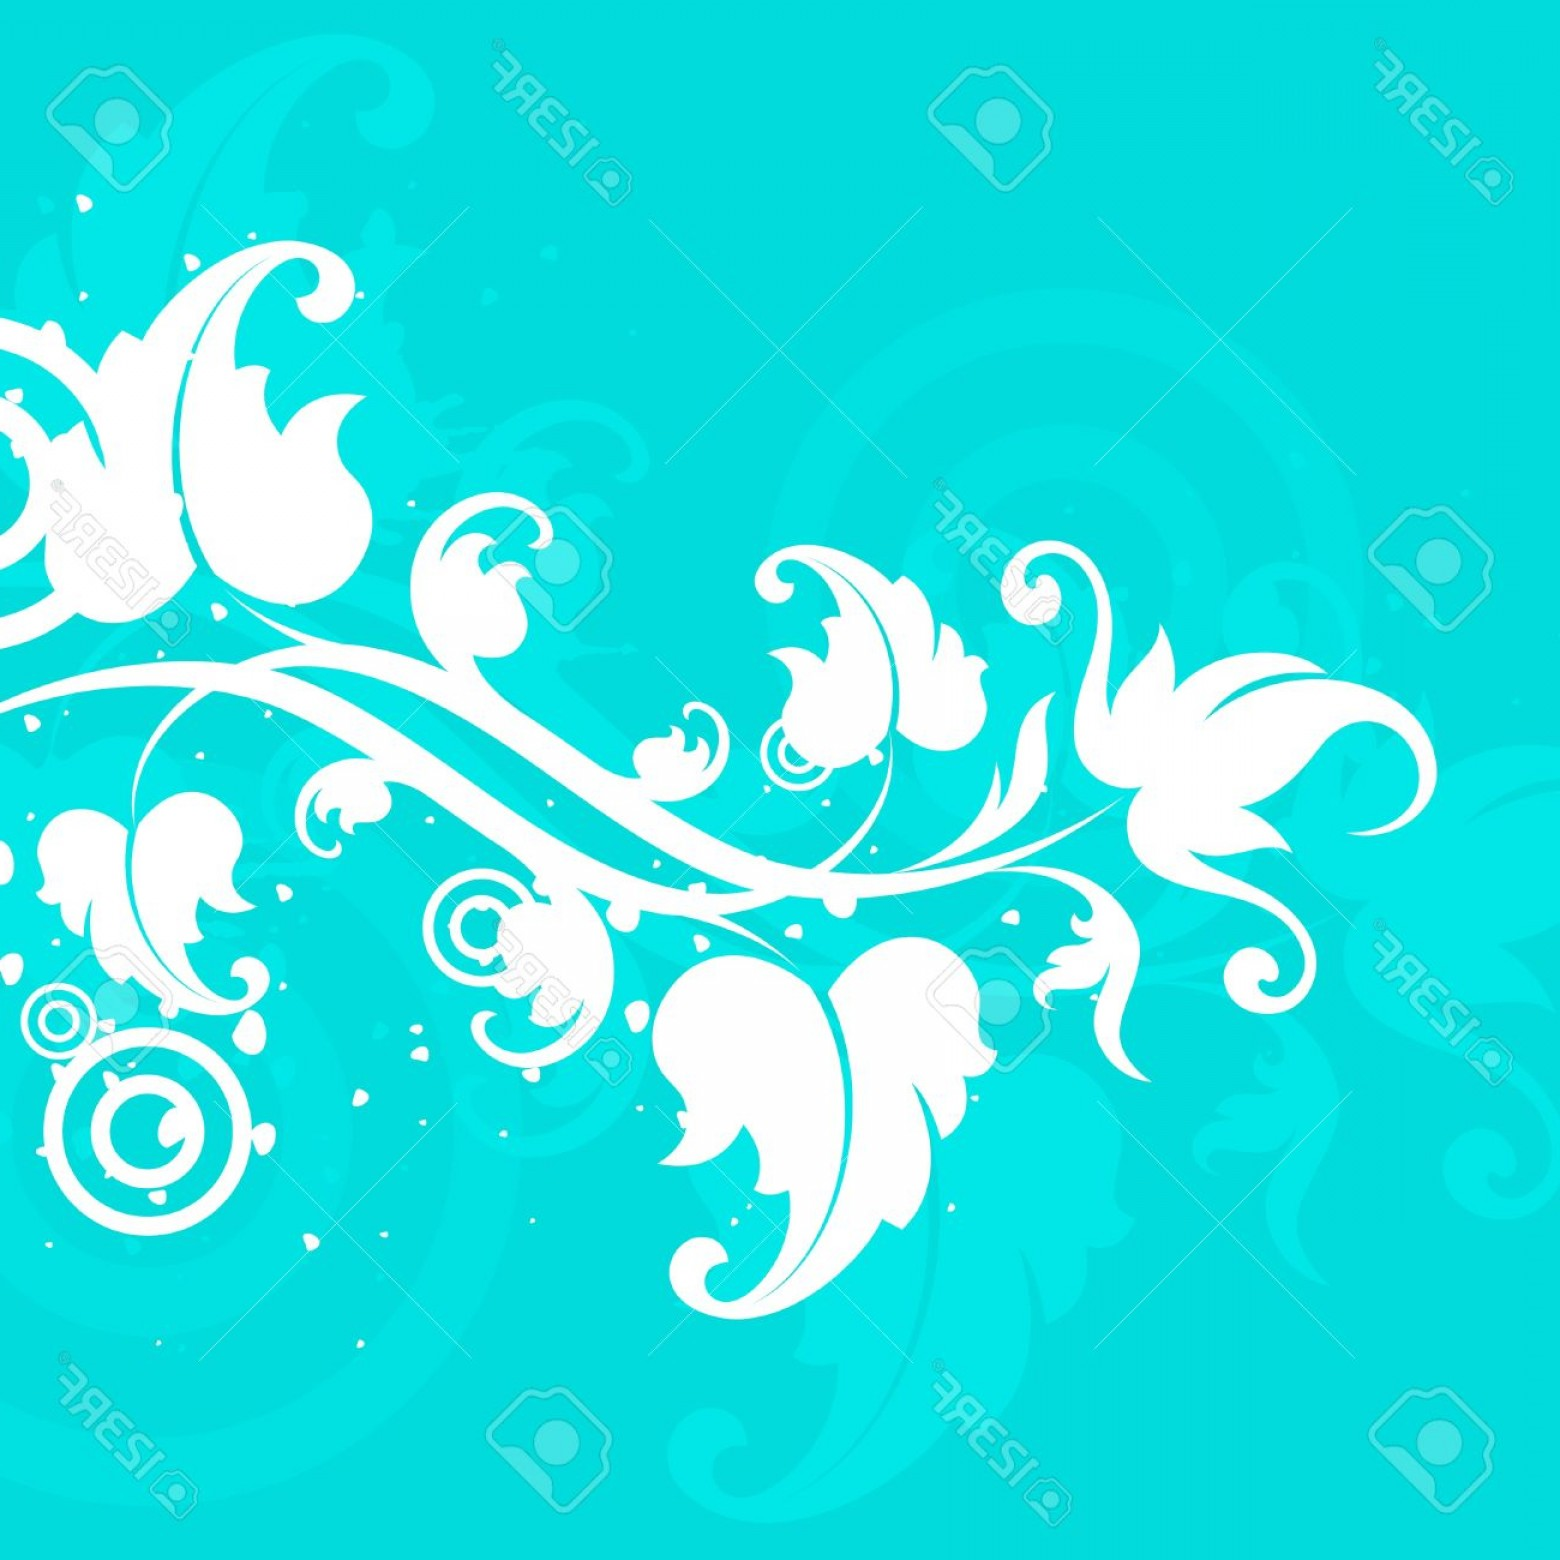 Turquoise Flower Vector: Photowhite Flower On A Turquoise Background